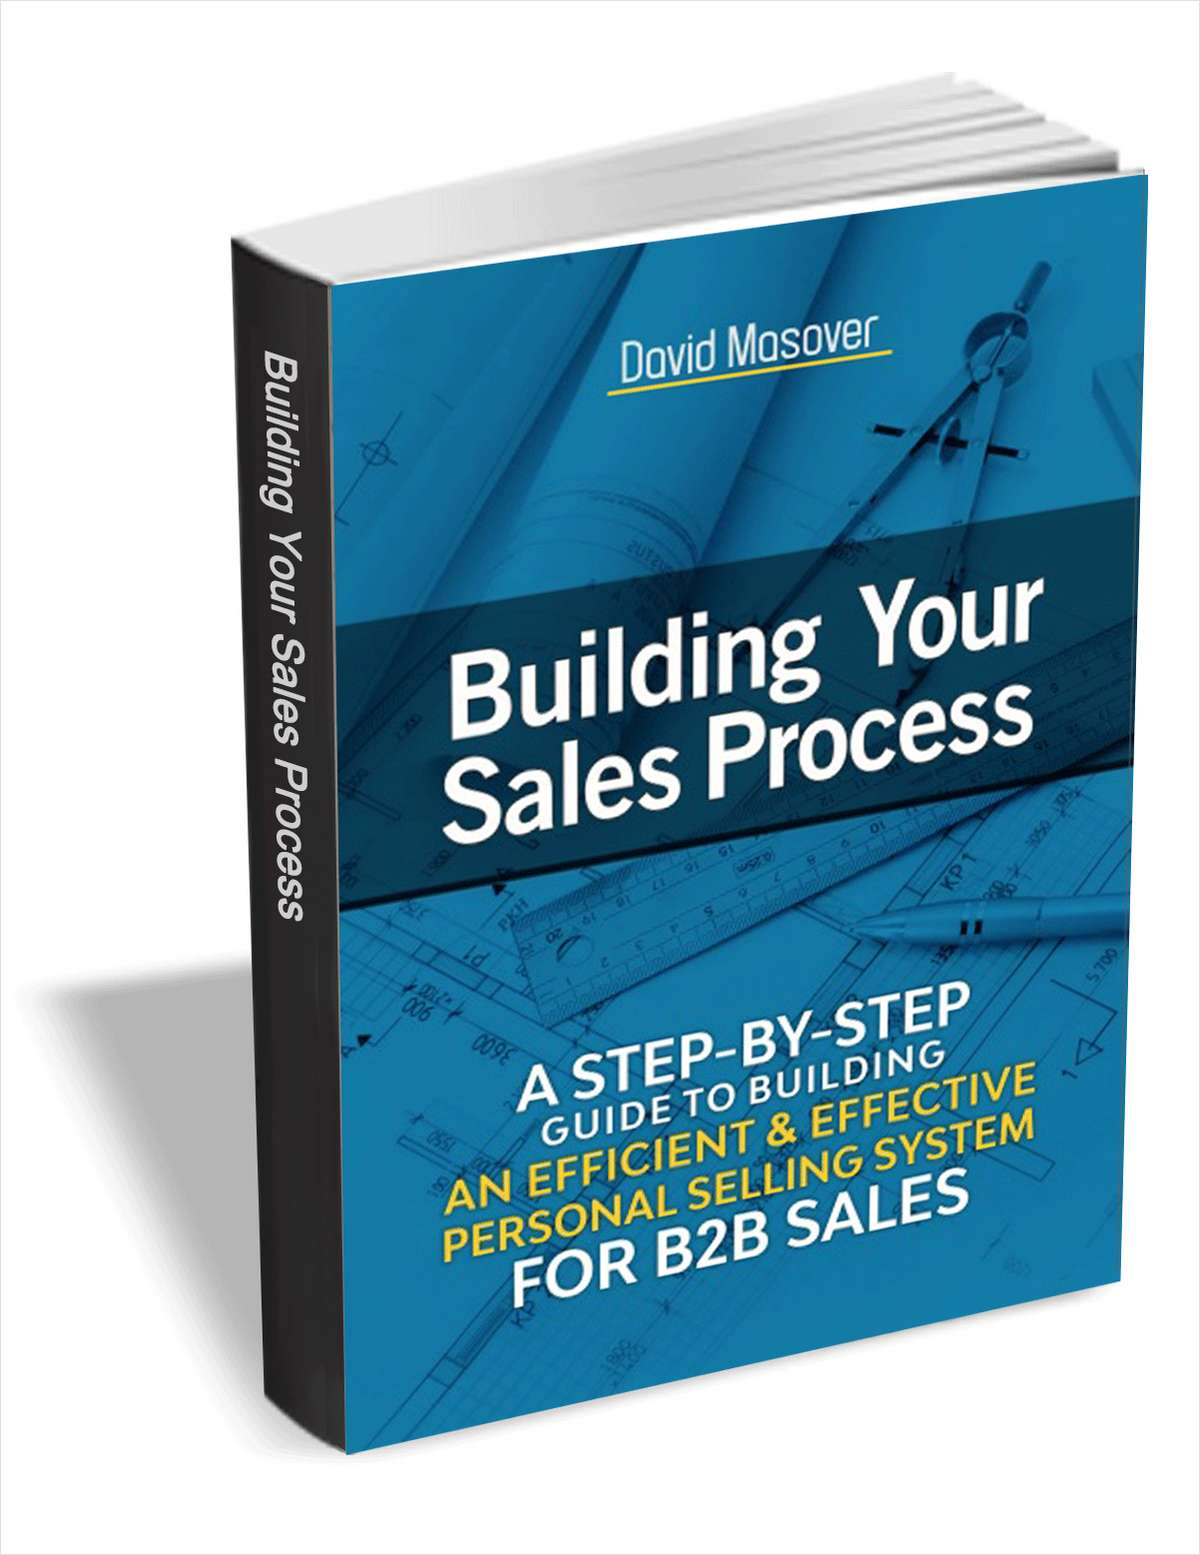 Building Your Sales Process - A Step-By-Step Guide to Building an Efficient and Effective Personal Selling System for B2B Sales